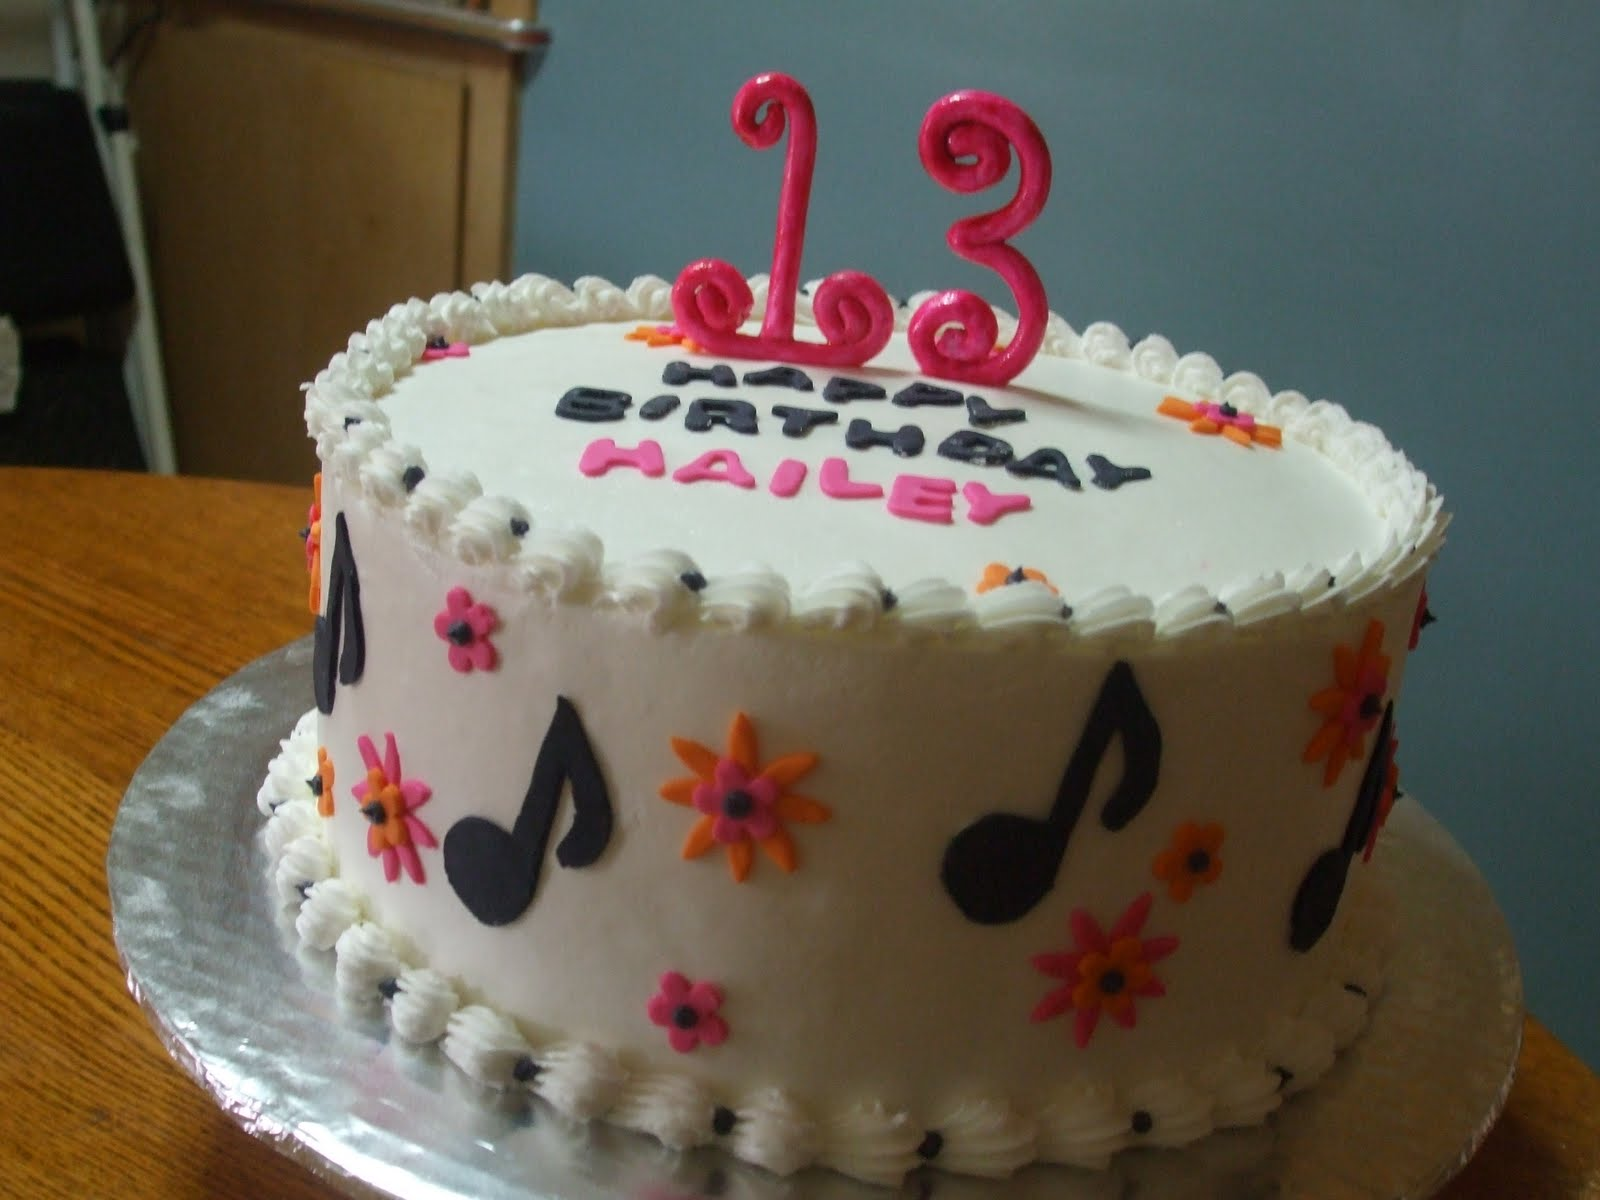 Birthday Cake For Young Lady Image Inspiration of Cake and